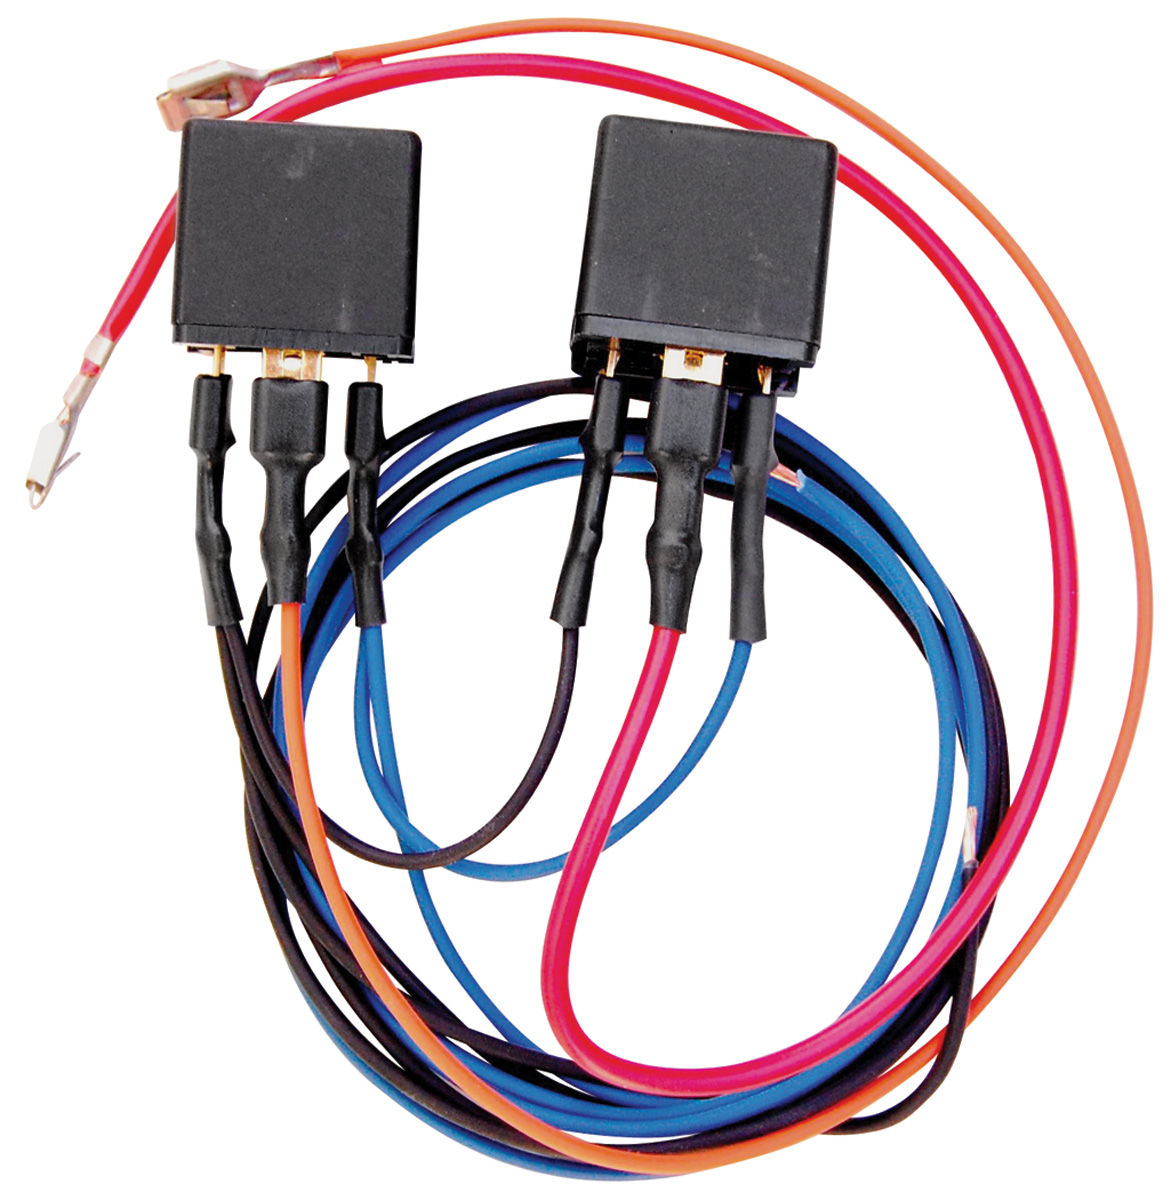 1950 Cadillac Wiring Harness Electrical Diagram Revolution Electronics 1954 76 Headlight Auto Off